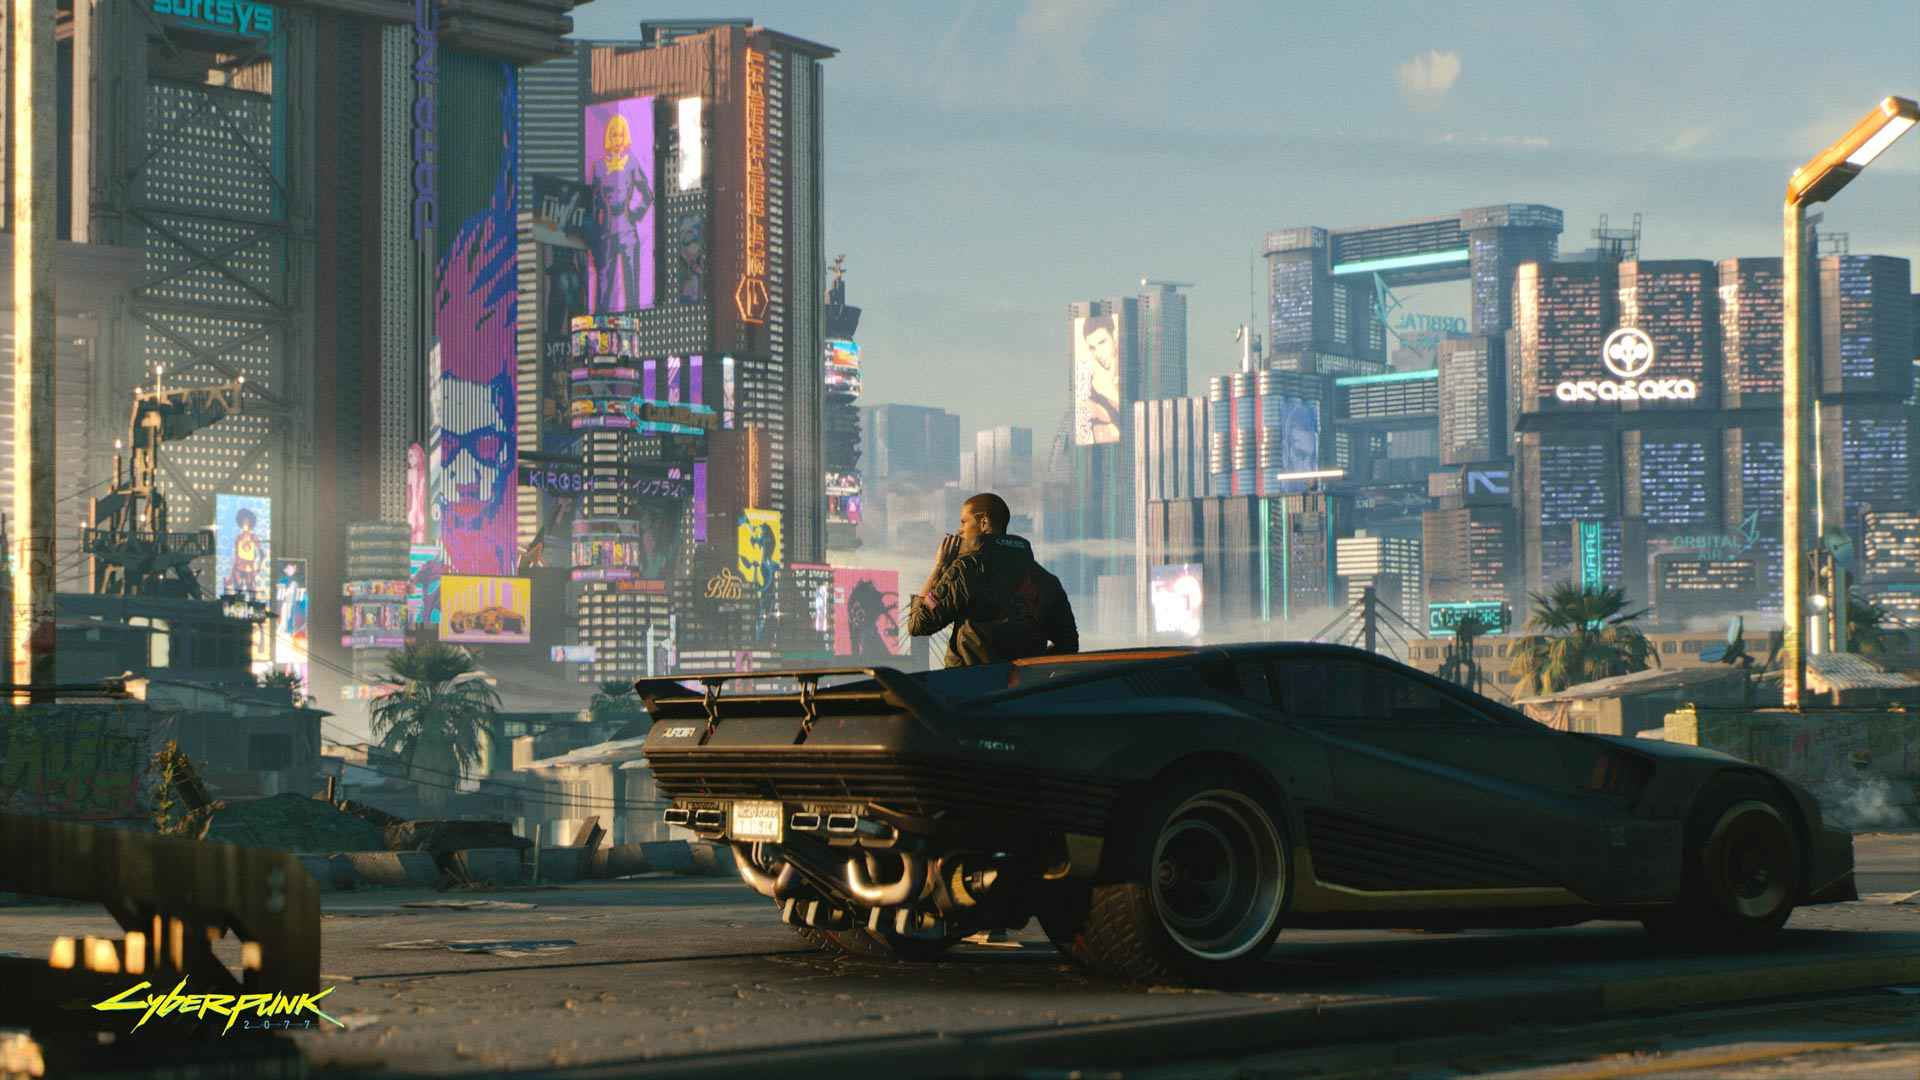 Cyberpunk 2077 Story And Gameplay Details – A Closer Look At Night City